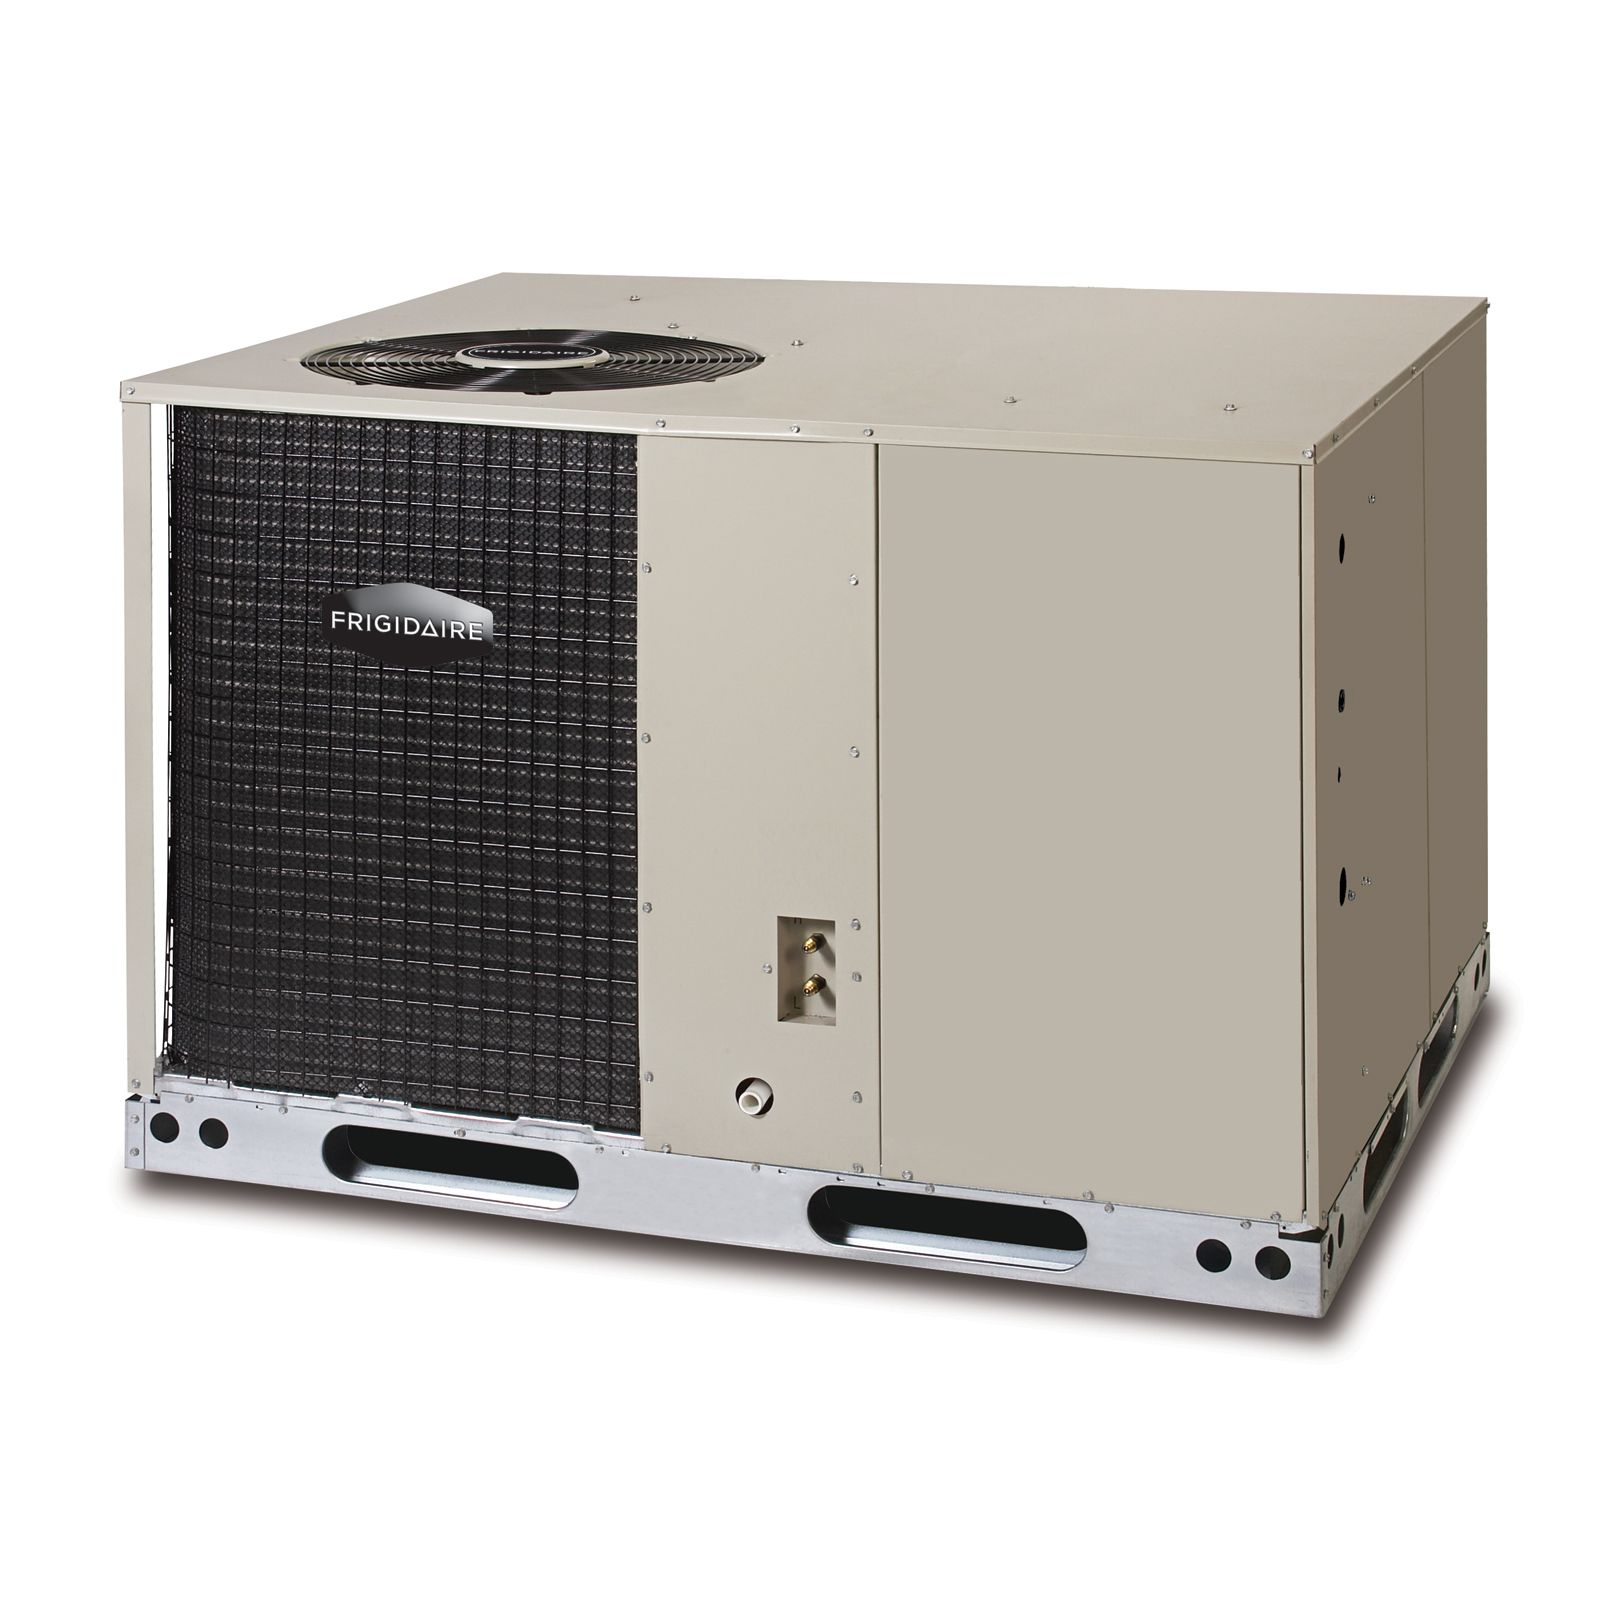 Frigidaire 922009 - Q7RE048K (AHRI 7617174) 4 Ton 14 SEER, Single Packaged Heat Pump, R410A, Single Phase